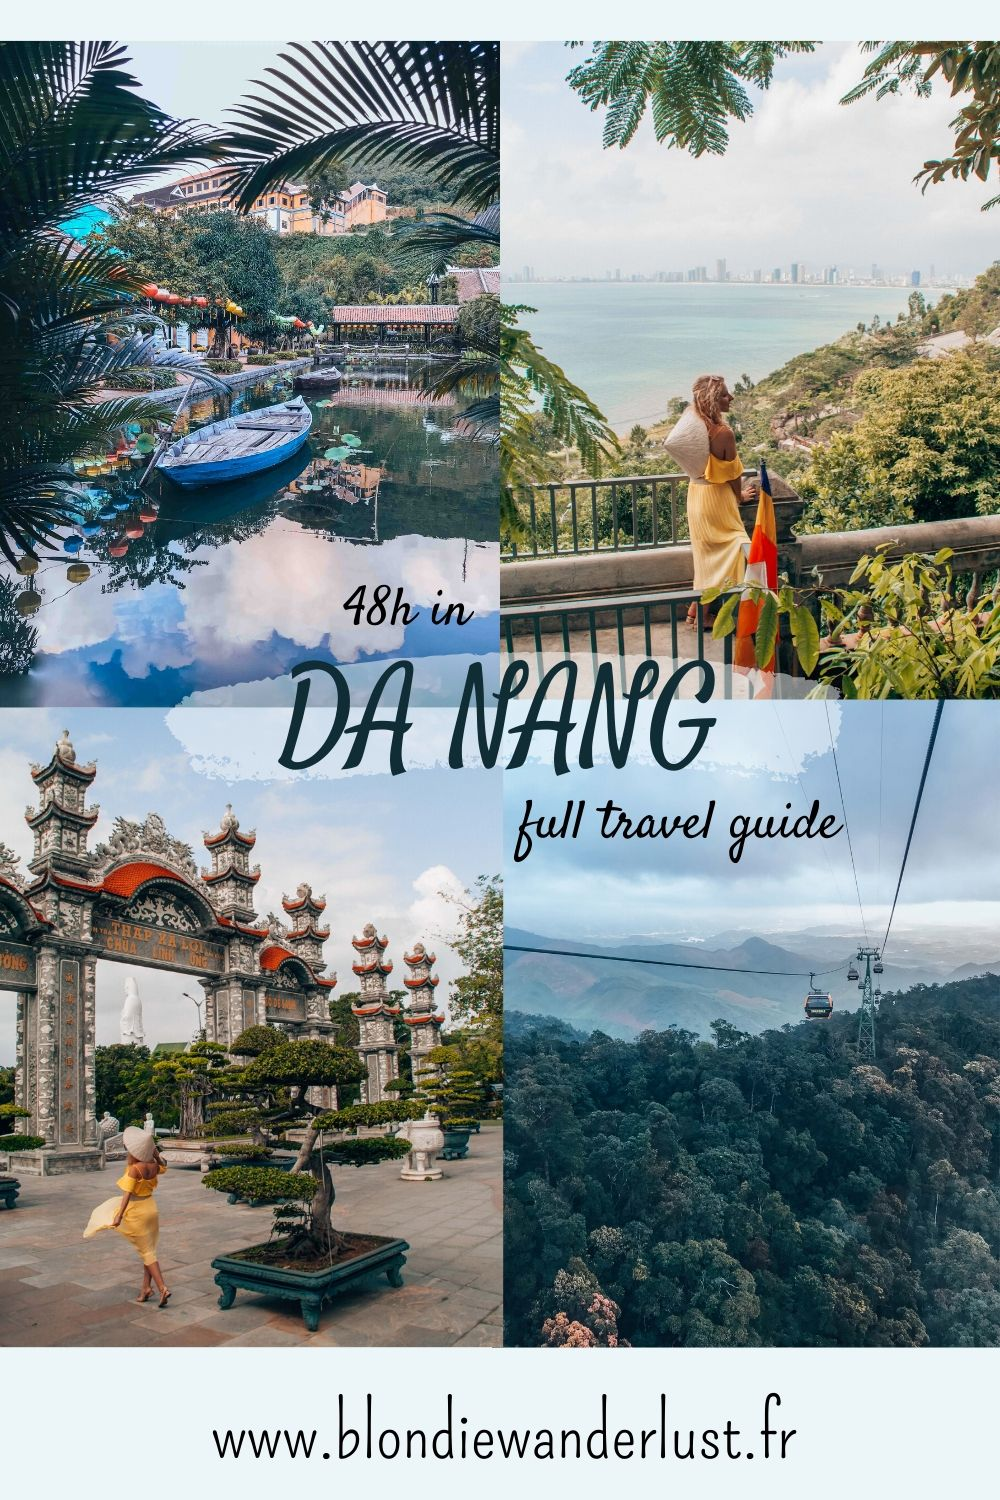 Full travel guide to spend 48h in Da Nang, Vietnam